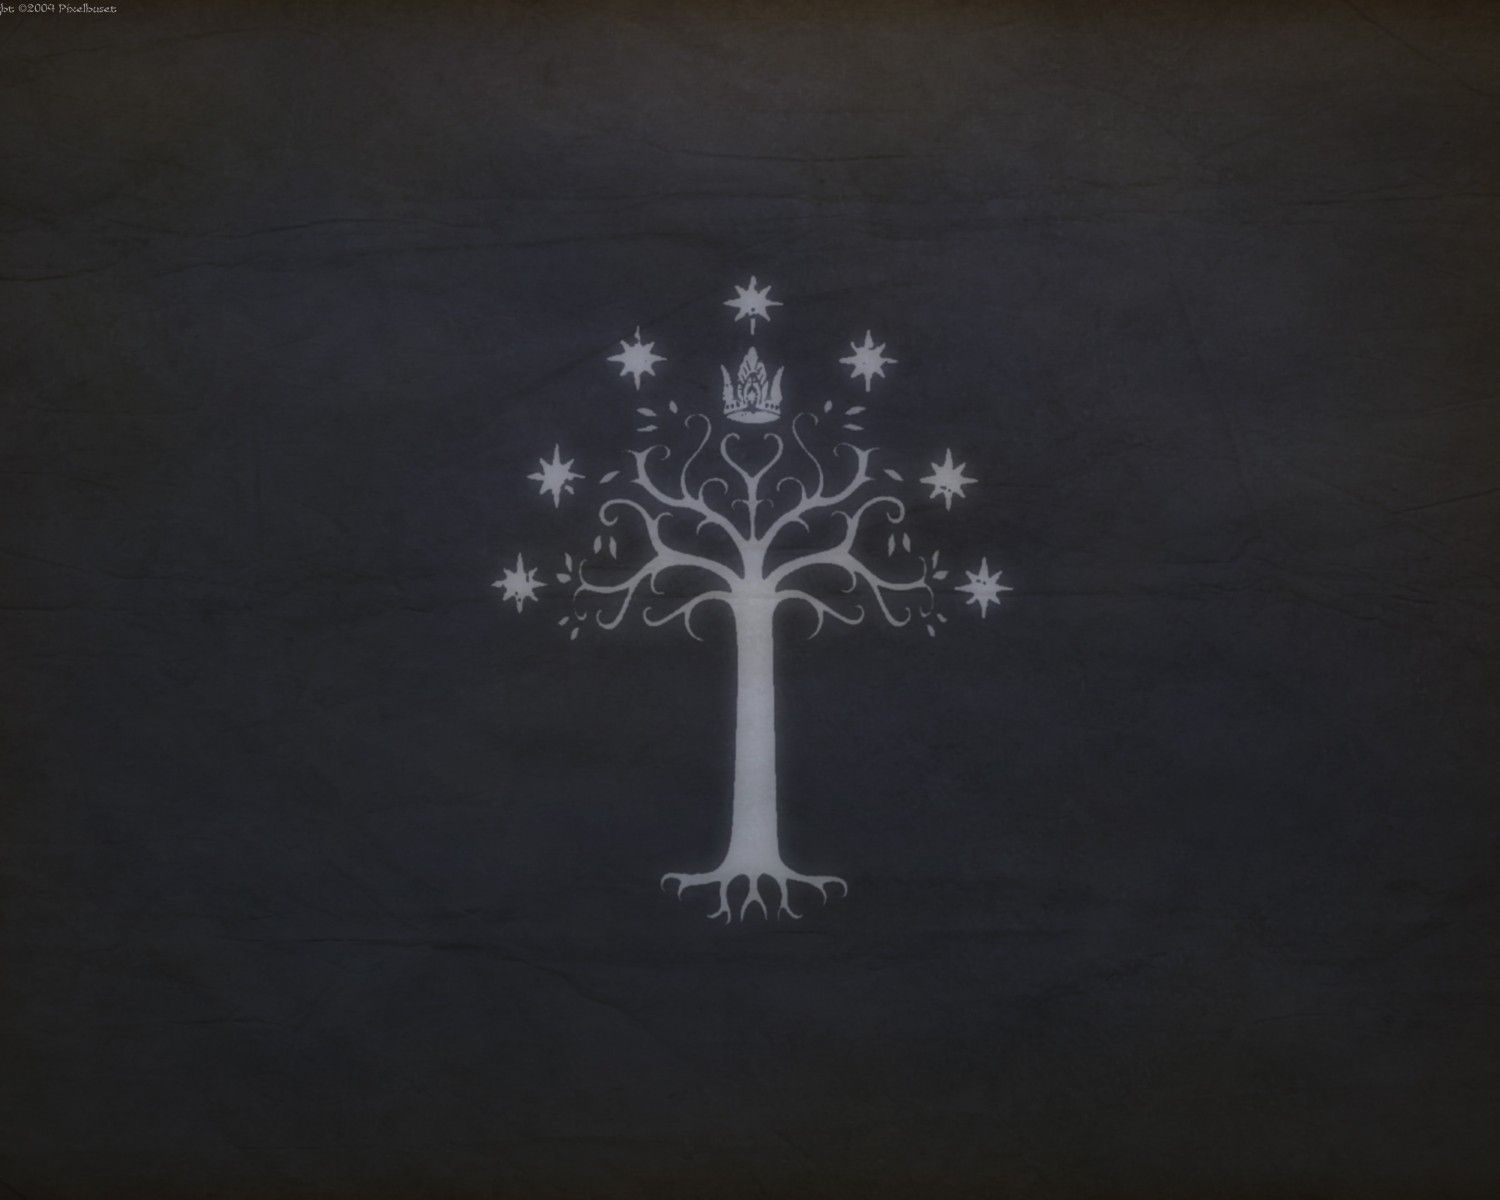 Movie Lord Of The Rings Wallpaper